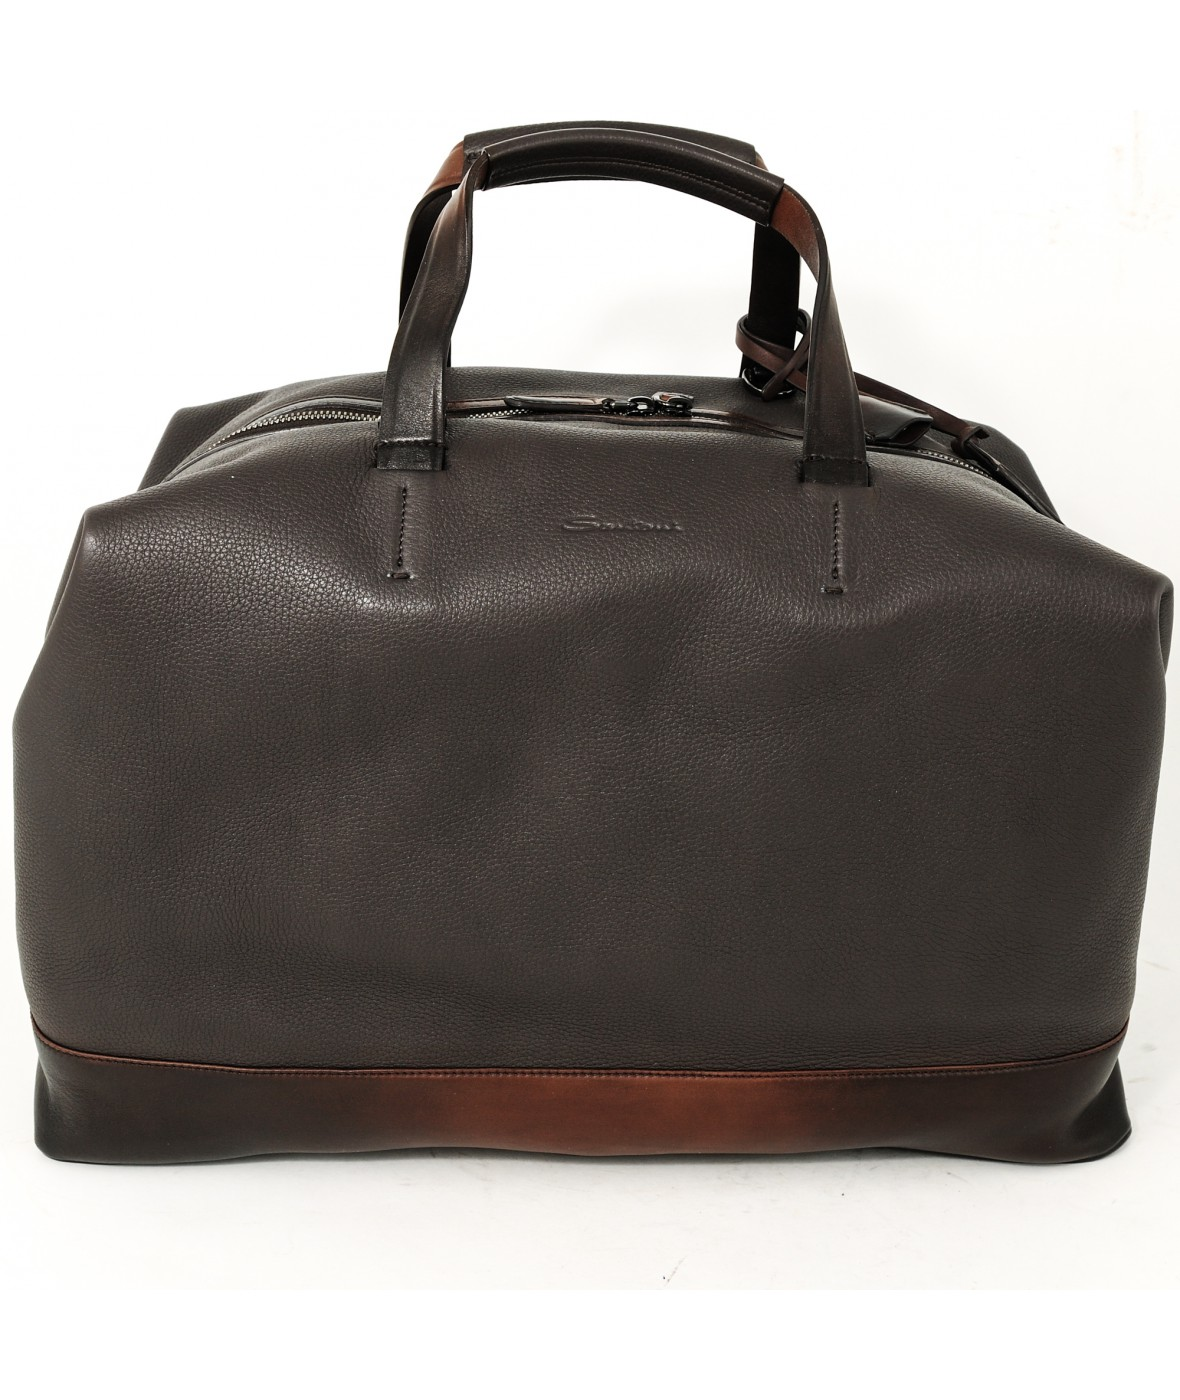 Santoni Travel Weekend Bag (32729)